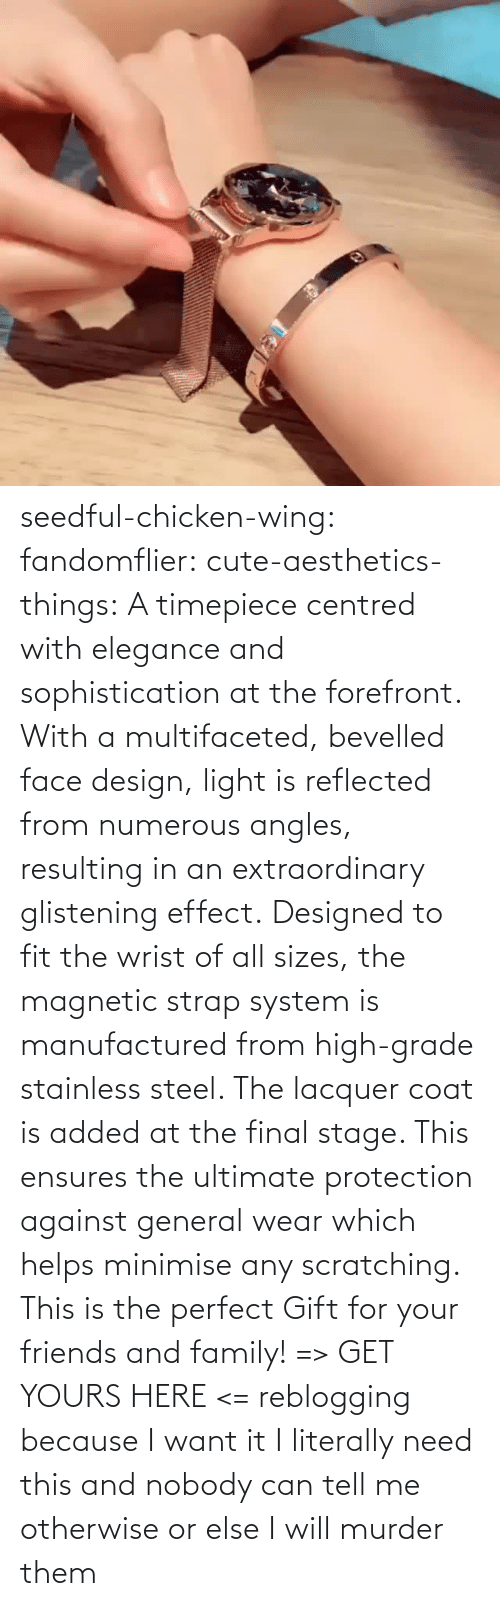 yours: seedful-chicken-wing: fandomflier:  cute-aesthetics-things:   A timepiece centred with elegance and sophistication at the forefront. With a multifaceted, bevelled face design, light is reflected from numerous angles, resulting in an extraordinary glistening effect. Designed to fit the wrist of all sizes, the magnetic strap system is manufactured from high-grade stainless steel. The lacquer coat is added at the final stage. This ensures the ultimate protection against general wear which helps minimise any scratching. This is the perfect Gift for your friends and family! => GET YOURS HERE <=   reblogging because I want it  I literally need this and nobody can tell me otherwise or else I will murder them